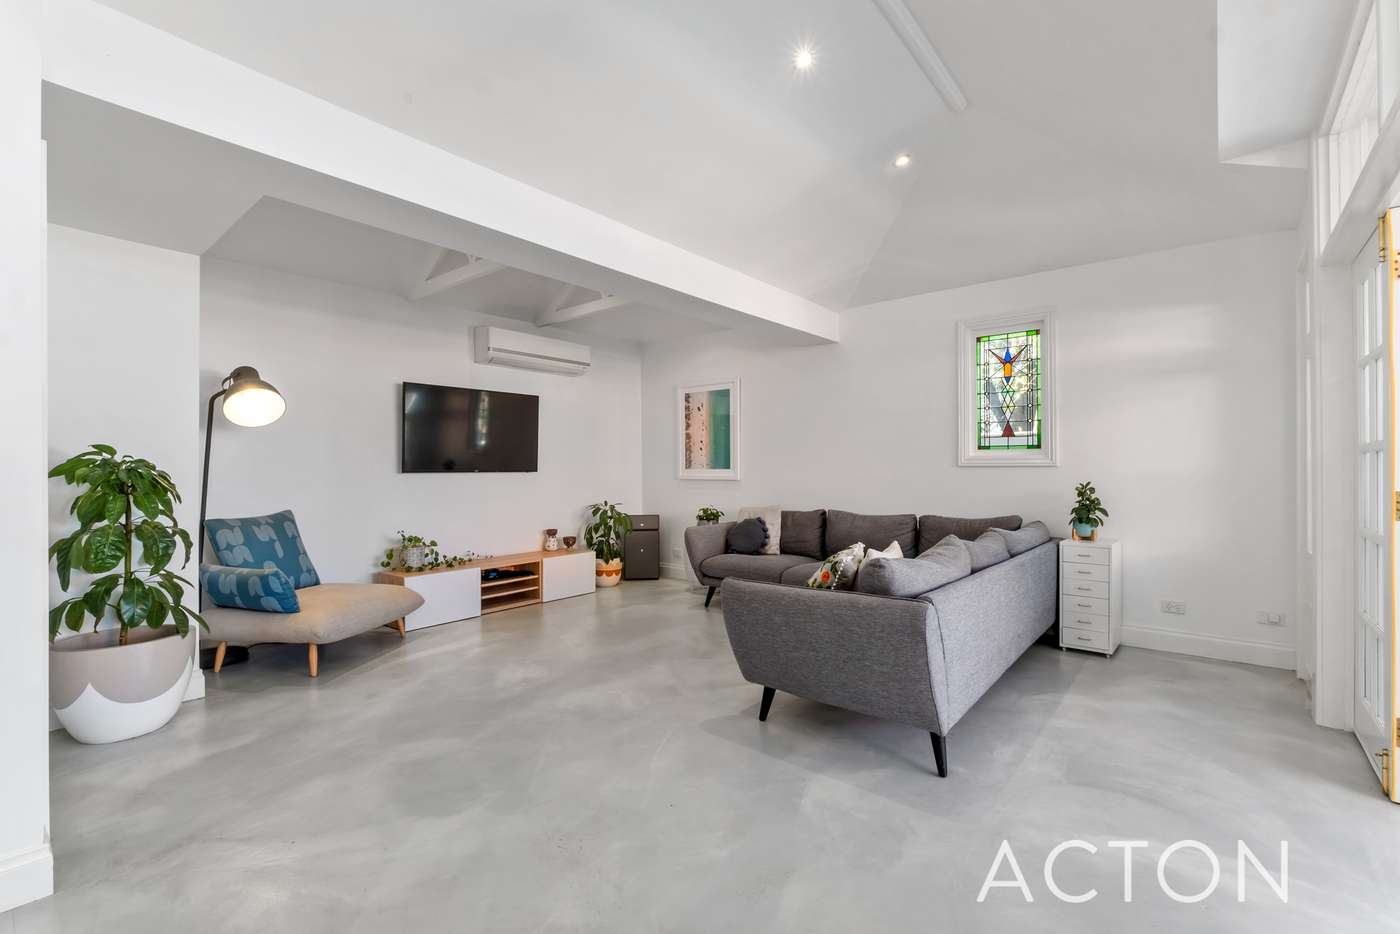 Sixth view of Homely house listing, 48 Northwood Street, West Leederville WA 6007